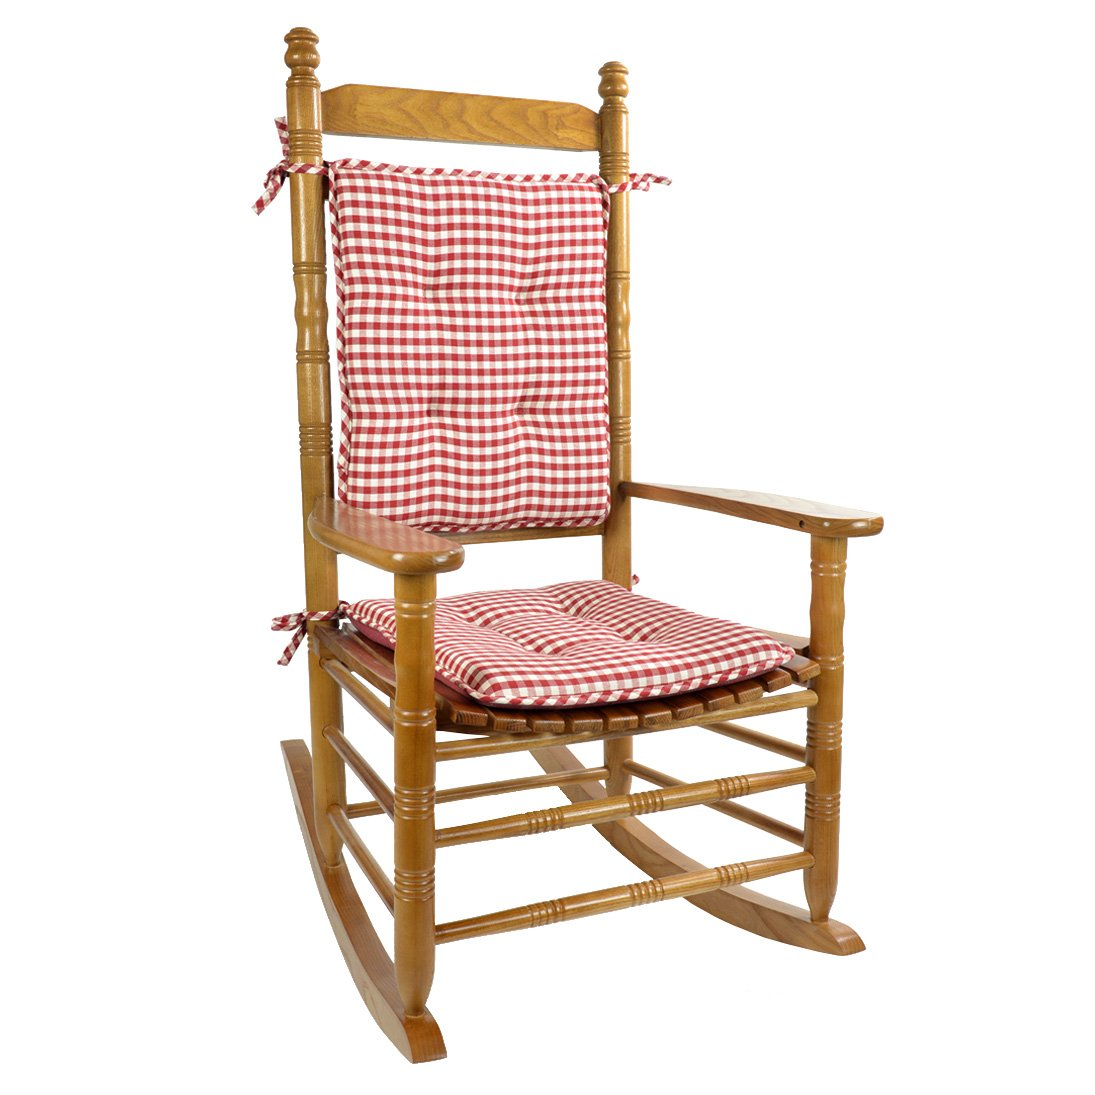 Red Gingham Rocking Chair Cushion SetRed Gingham Rocking Chair Cushion Set